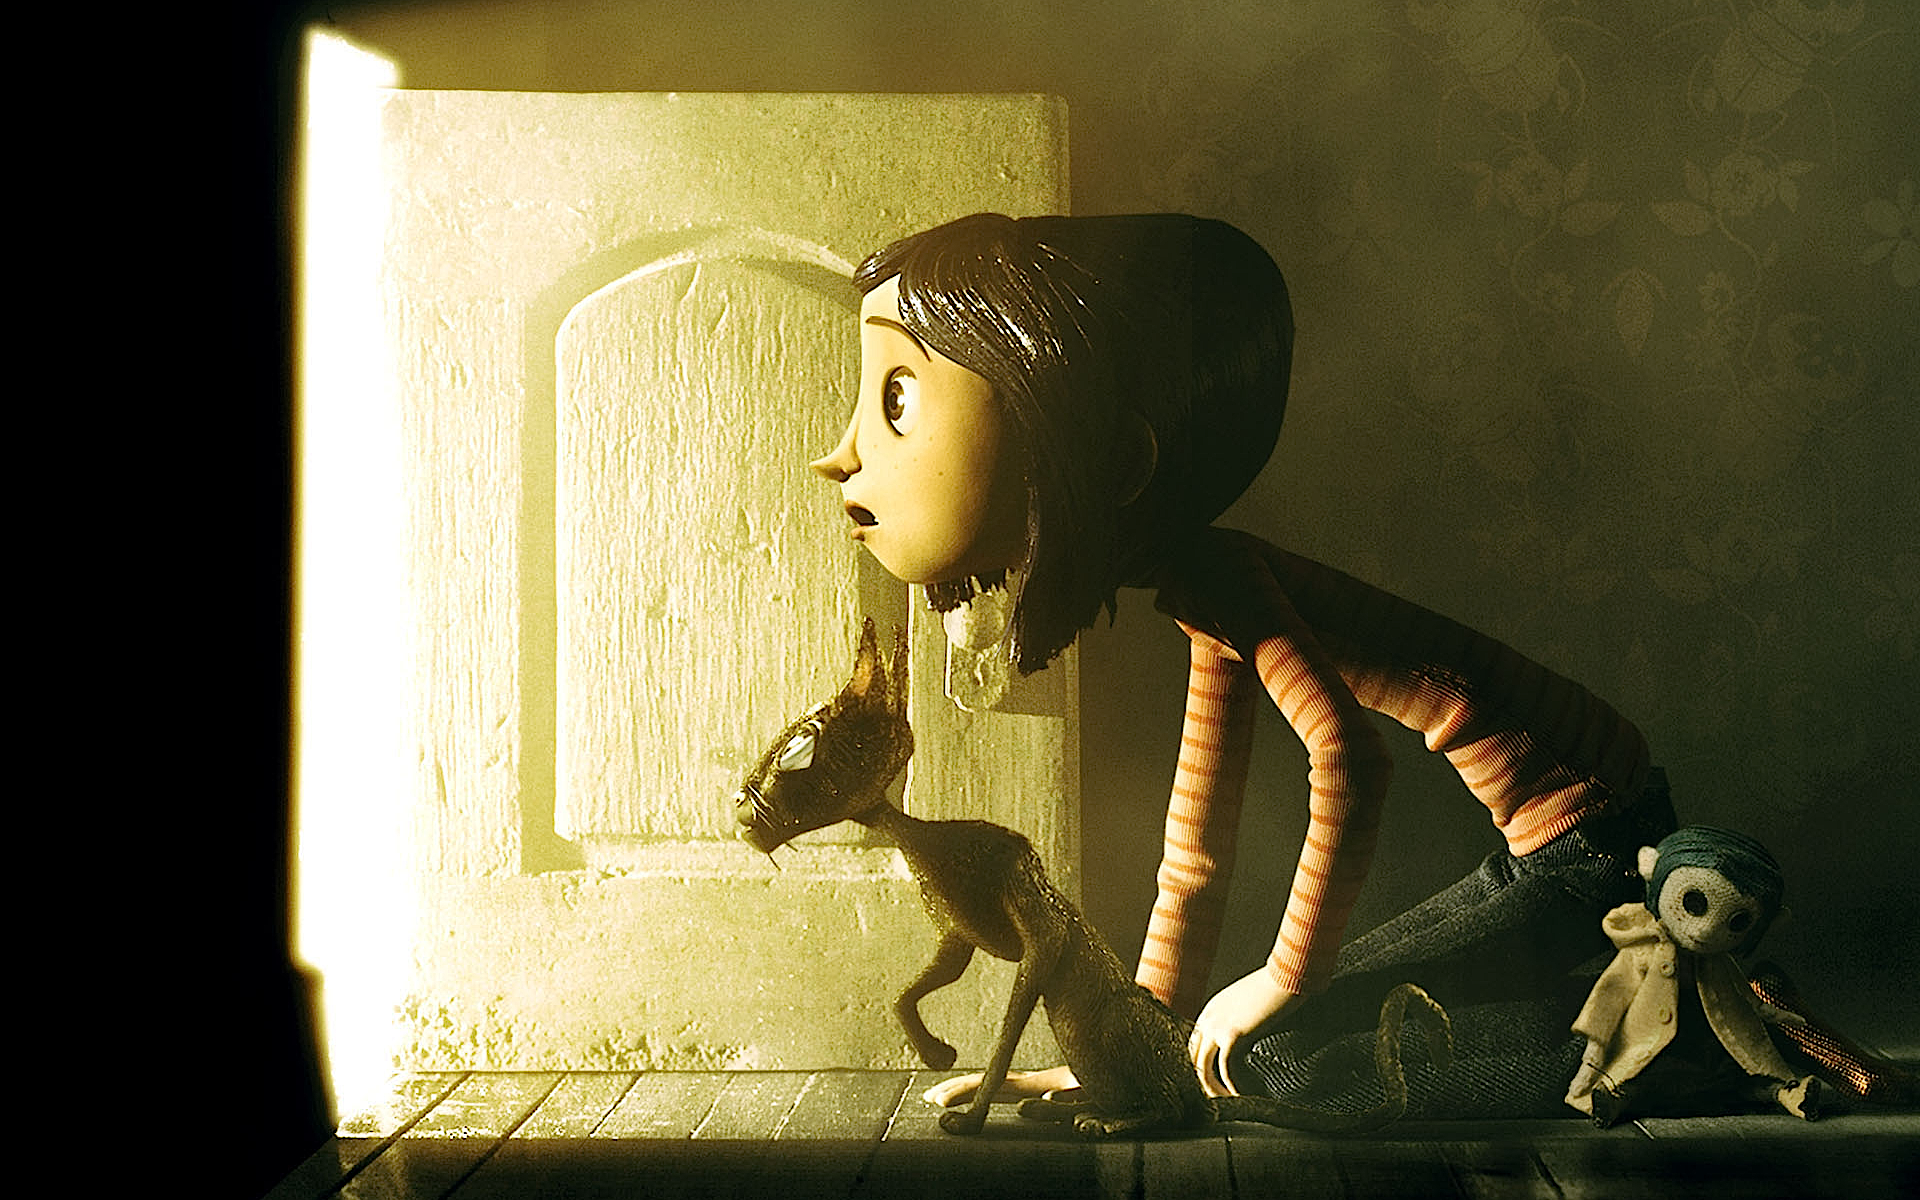 The Courage Of Coraline The Isles Of Imagination